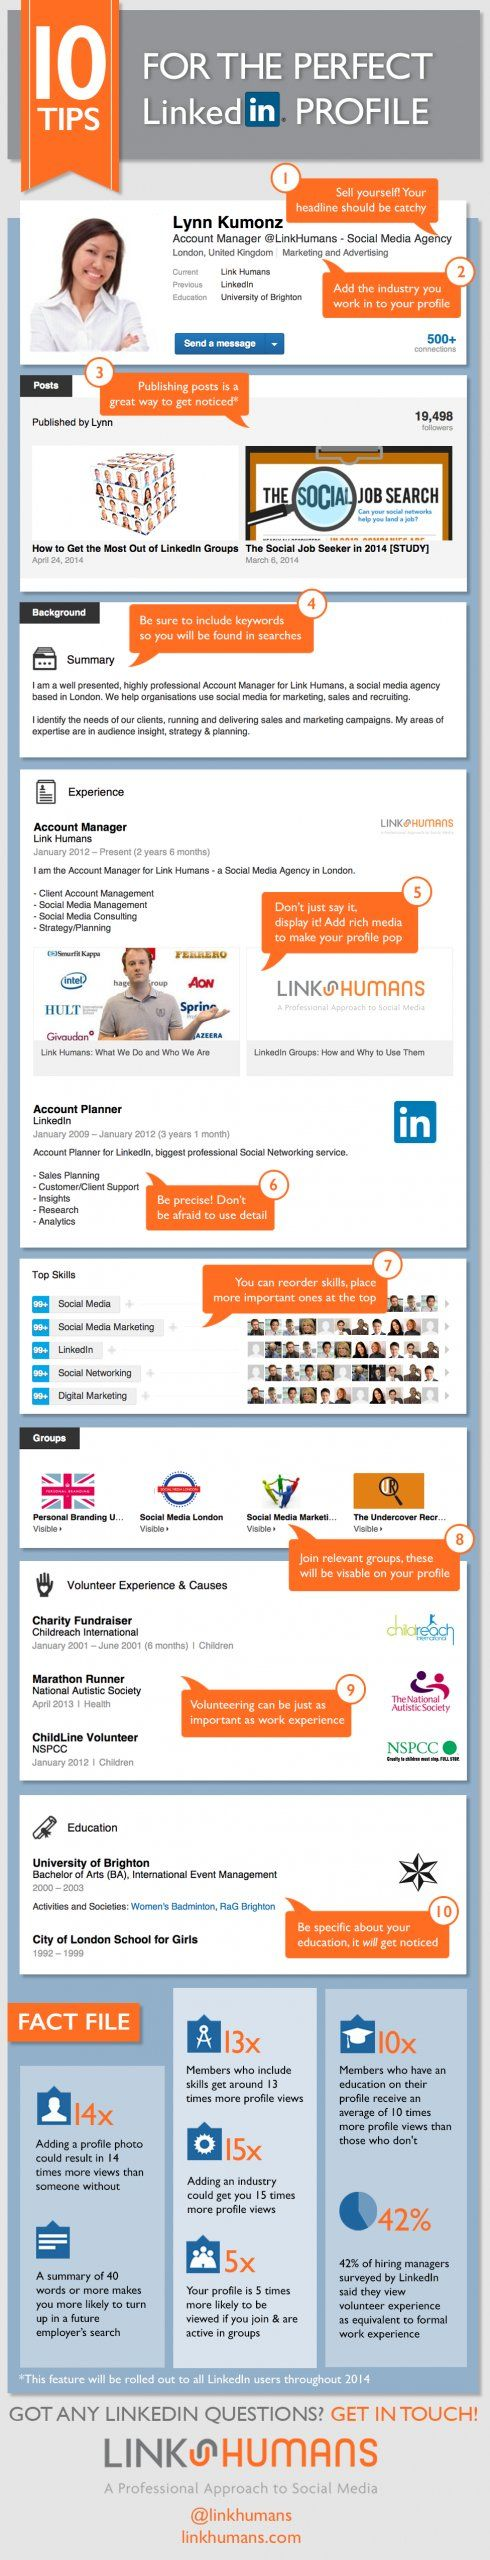 How To Optimize Your LinkedIn Profile For Recruiters.